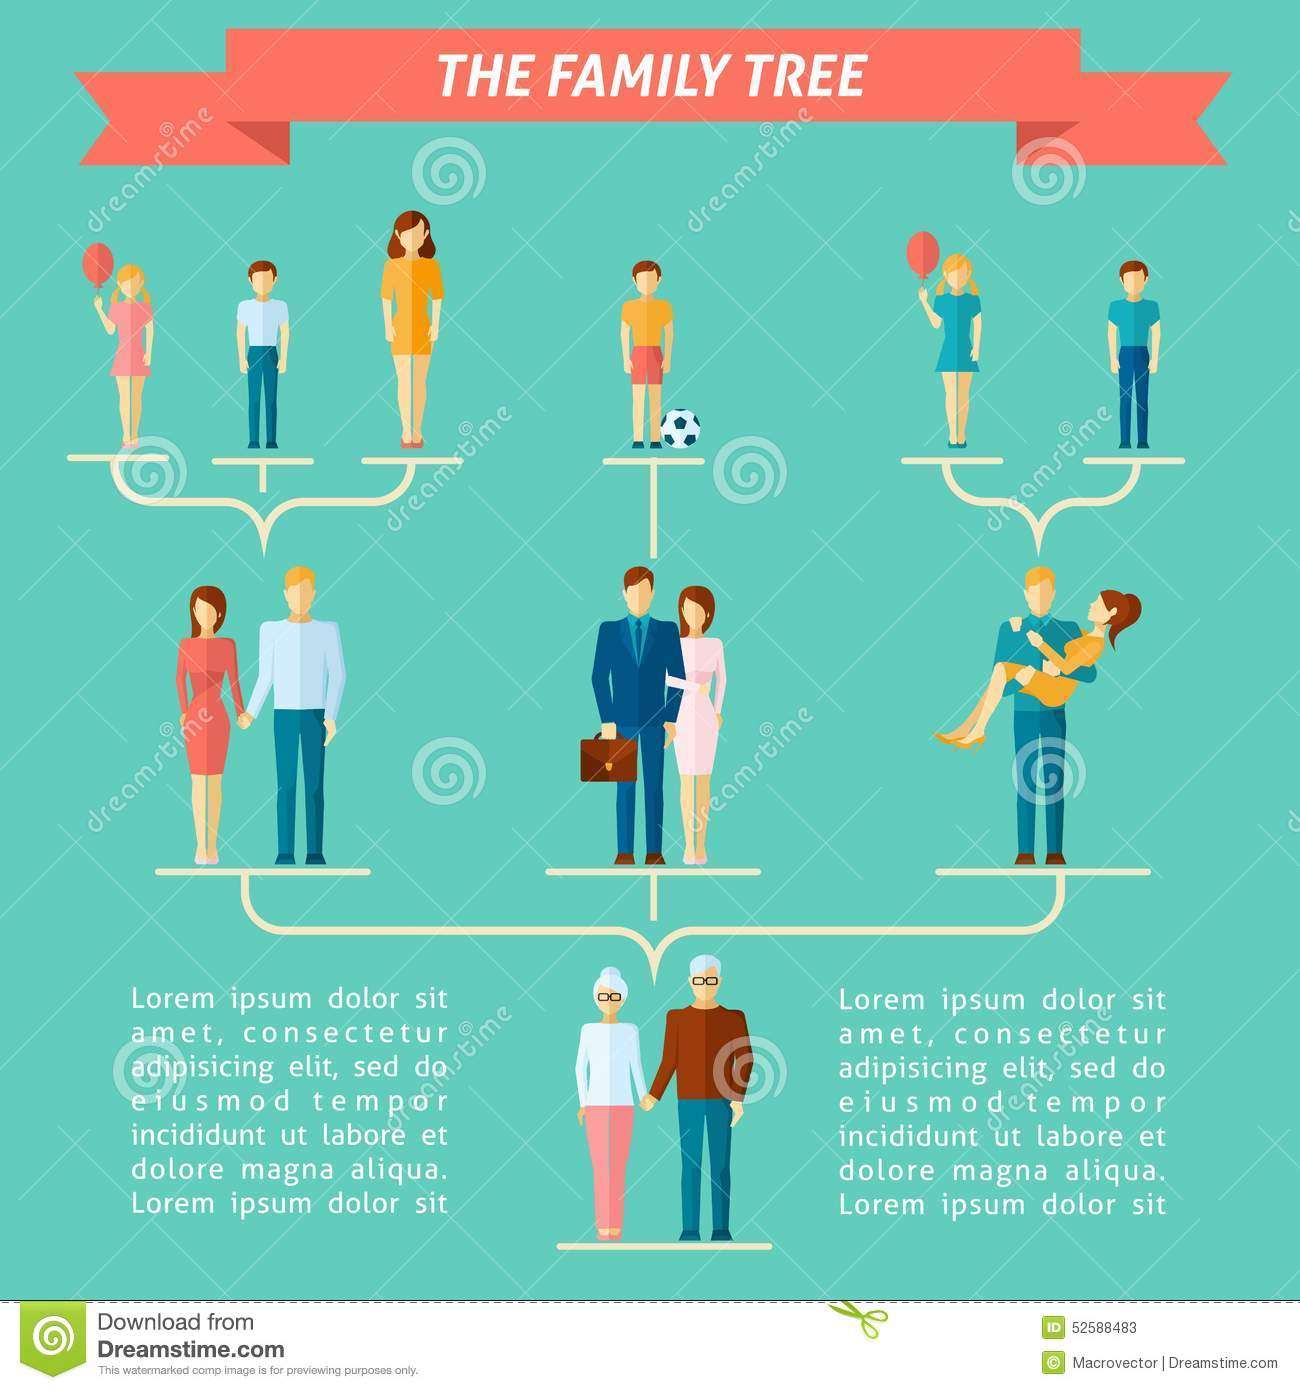 family tree concept cartoon vector cartoondealer com 52588483